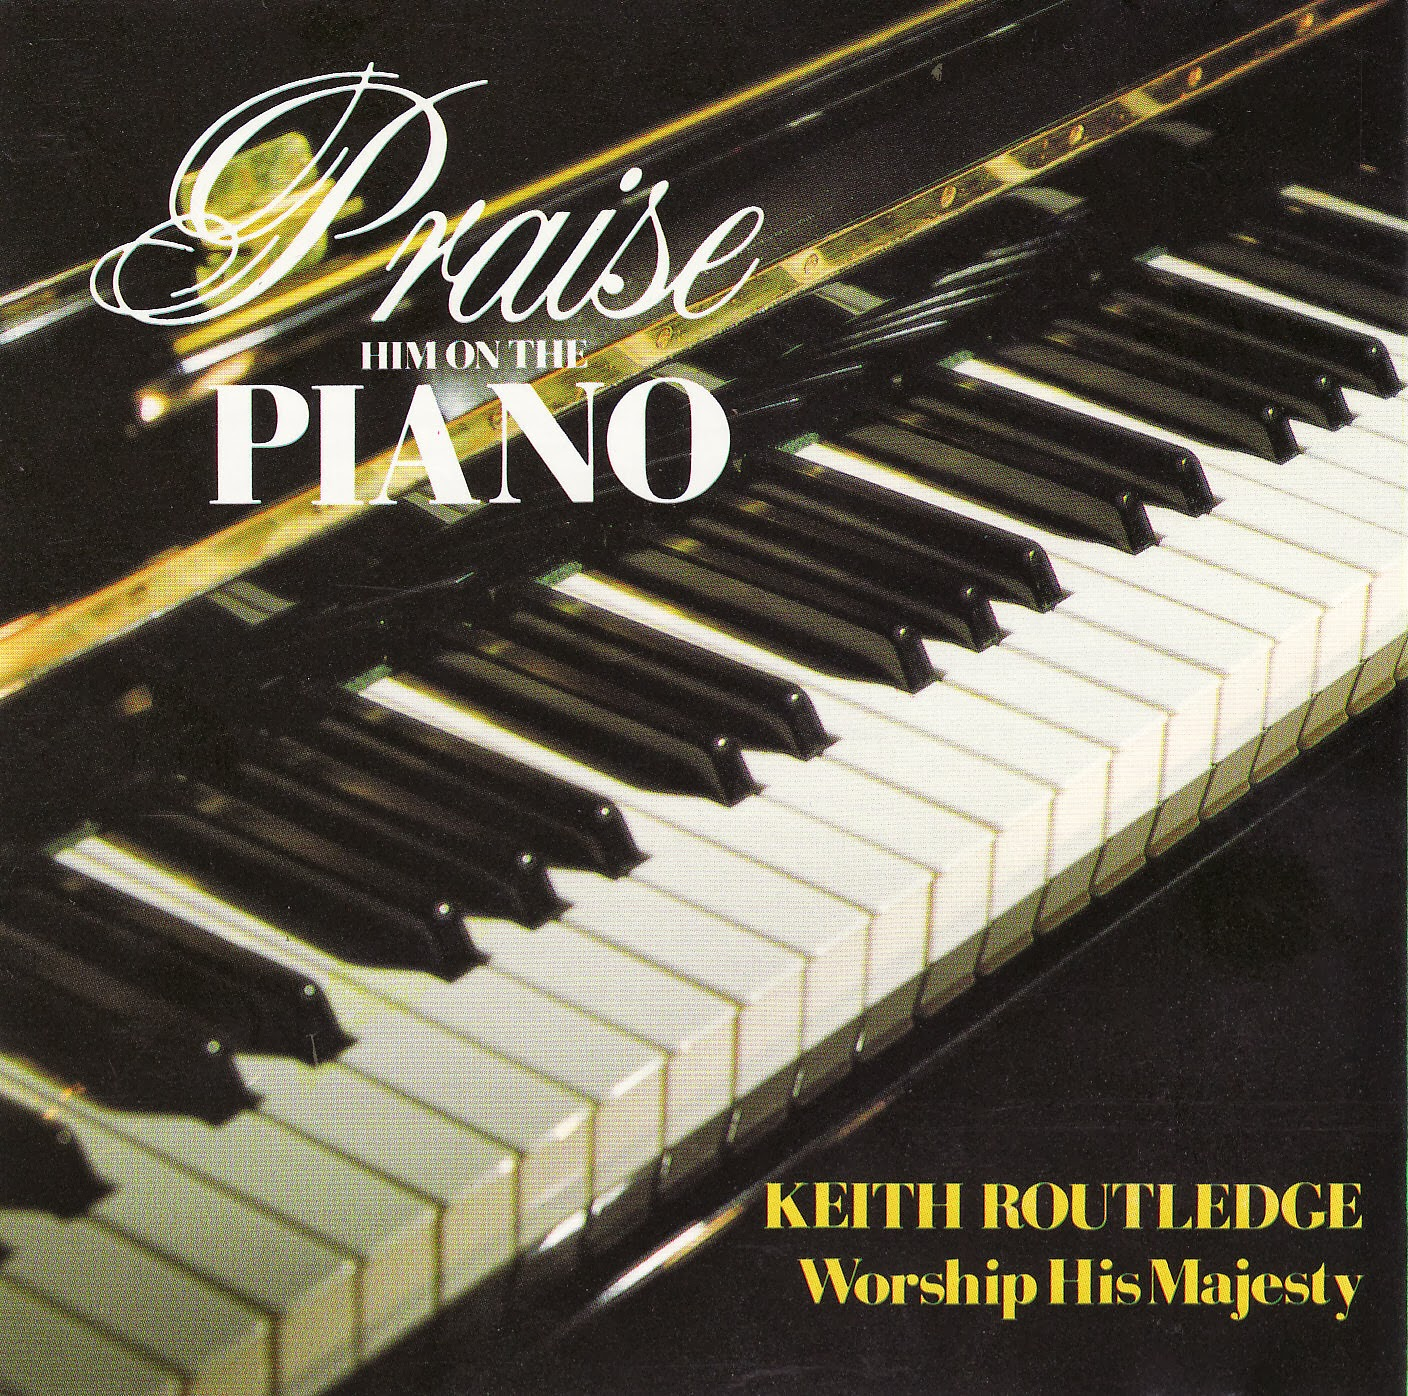 Keith Routledge-Praise Him On The Piano-